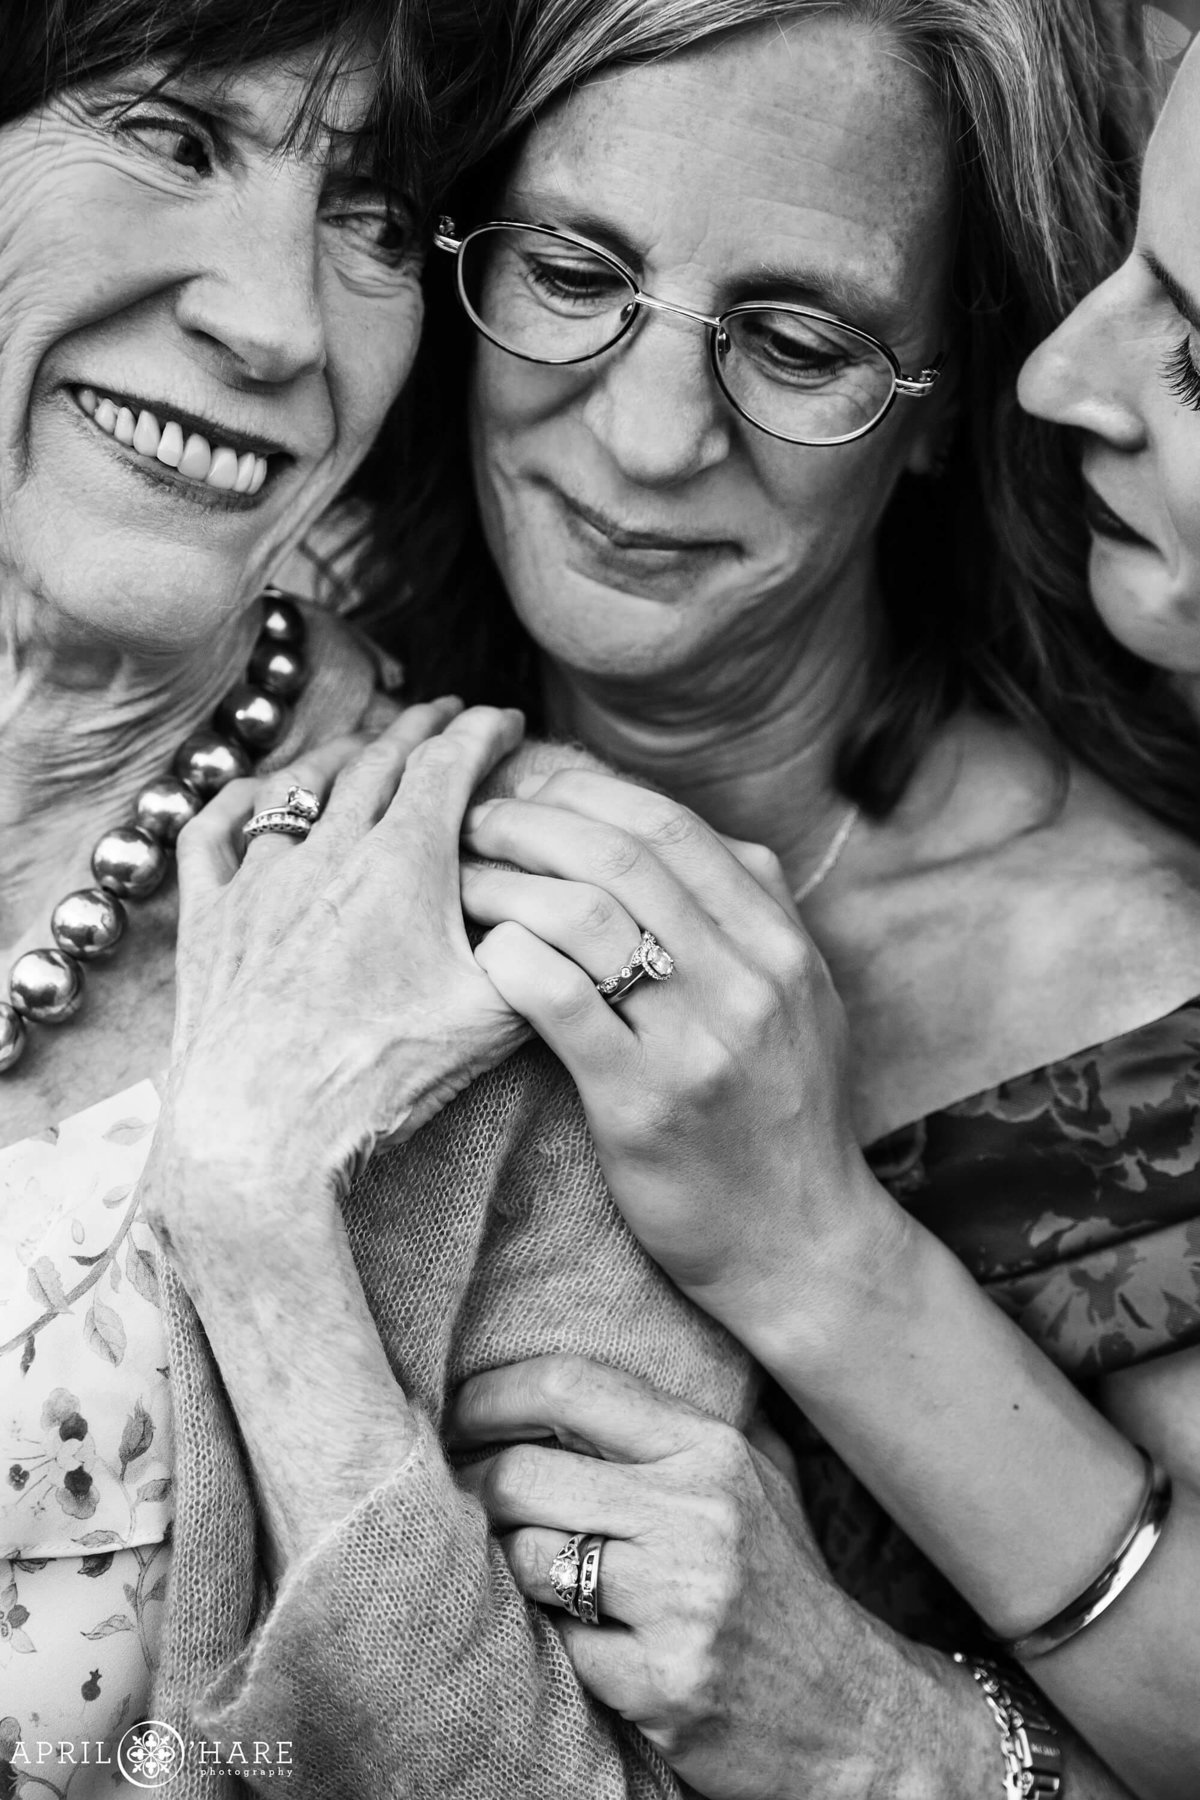 B&W Emotional Generational Portrait on a Wedding Day in Colorado